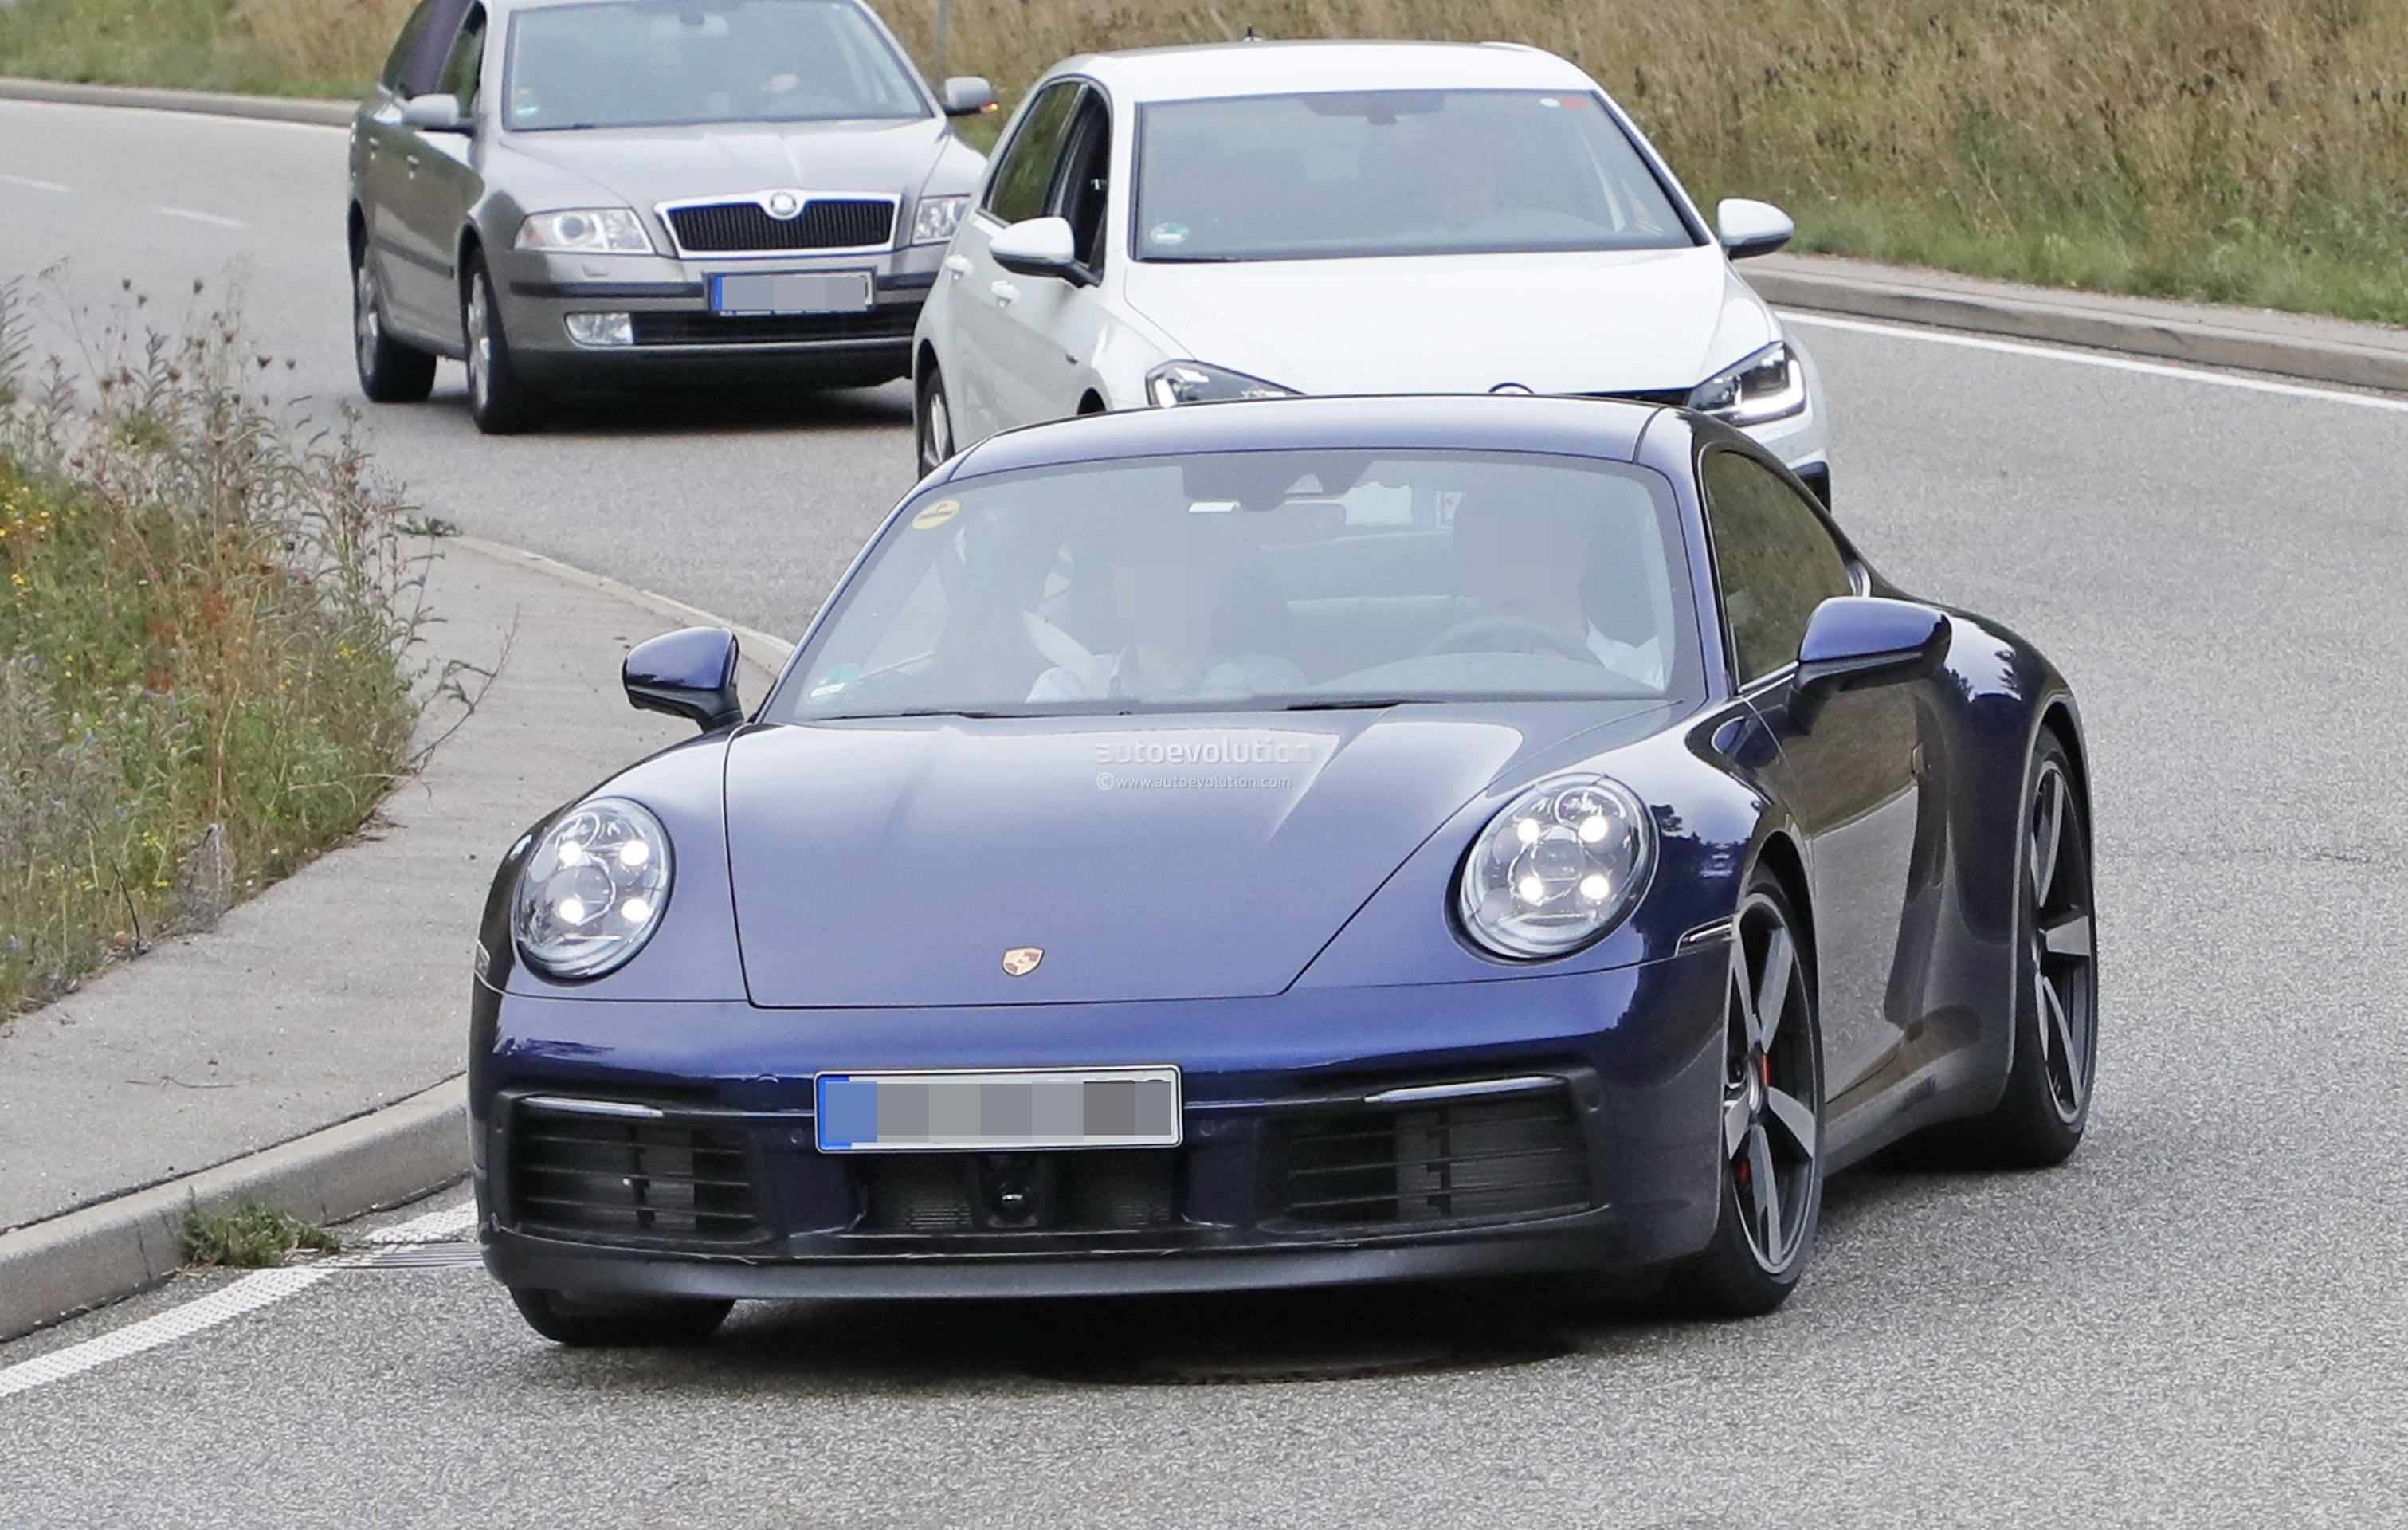 2020 Porsche 911 Revealed by Naked Prototype, Looks All